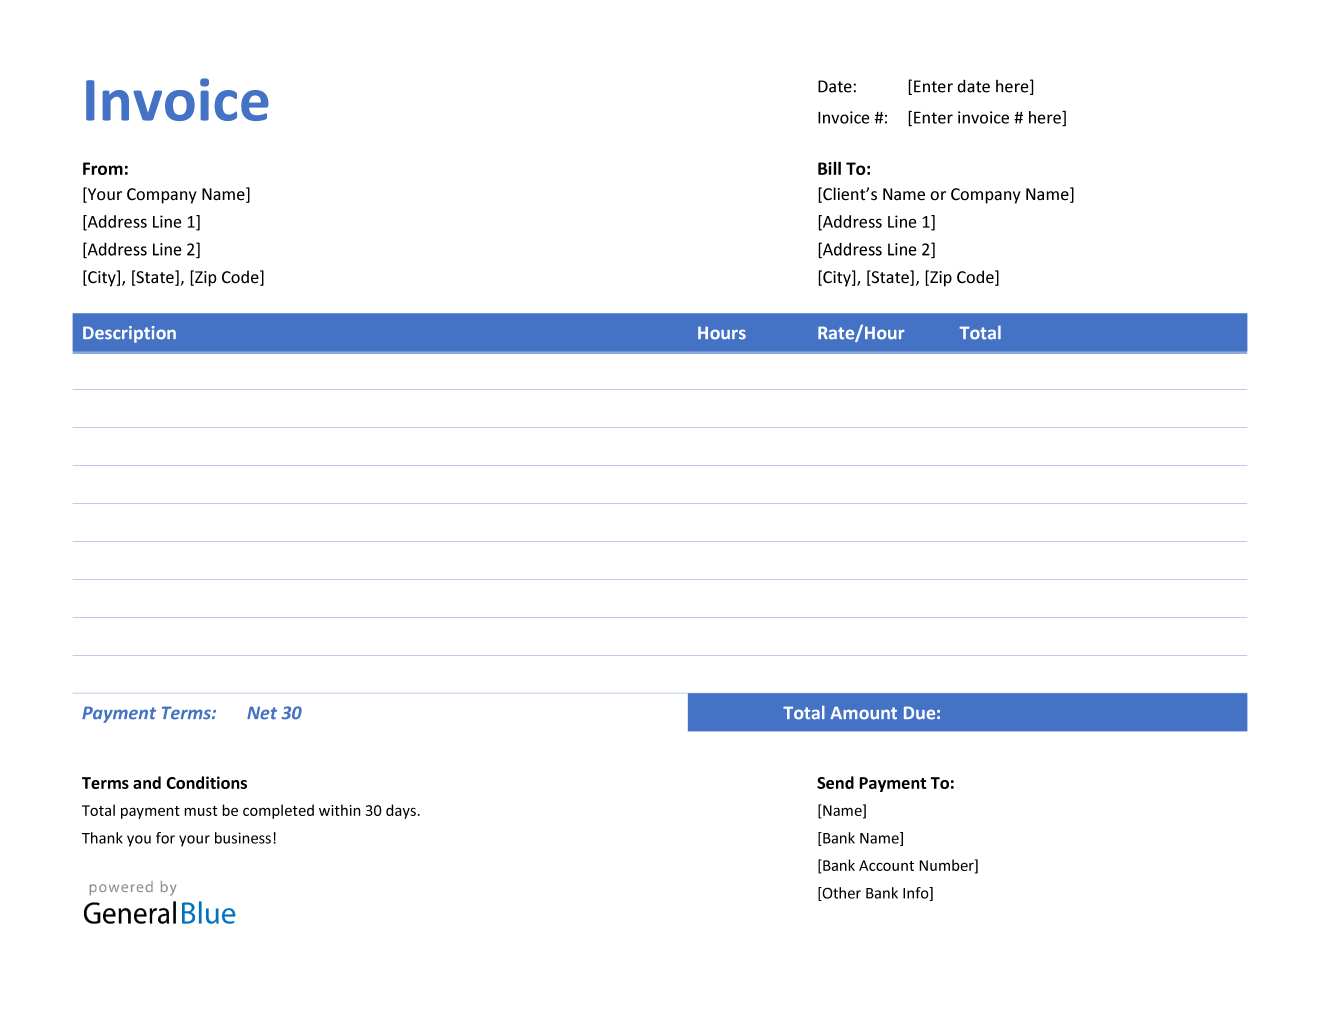 Invoice Template for U.S. Freelancers in Word (Highlighted)